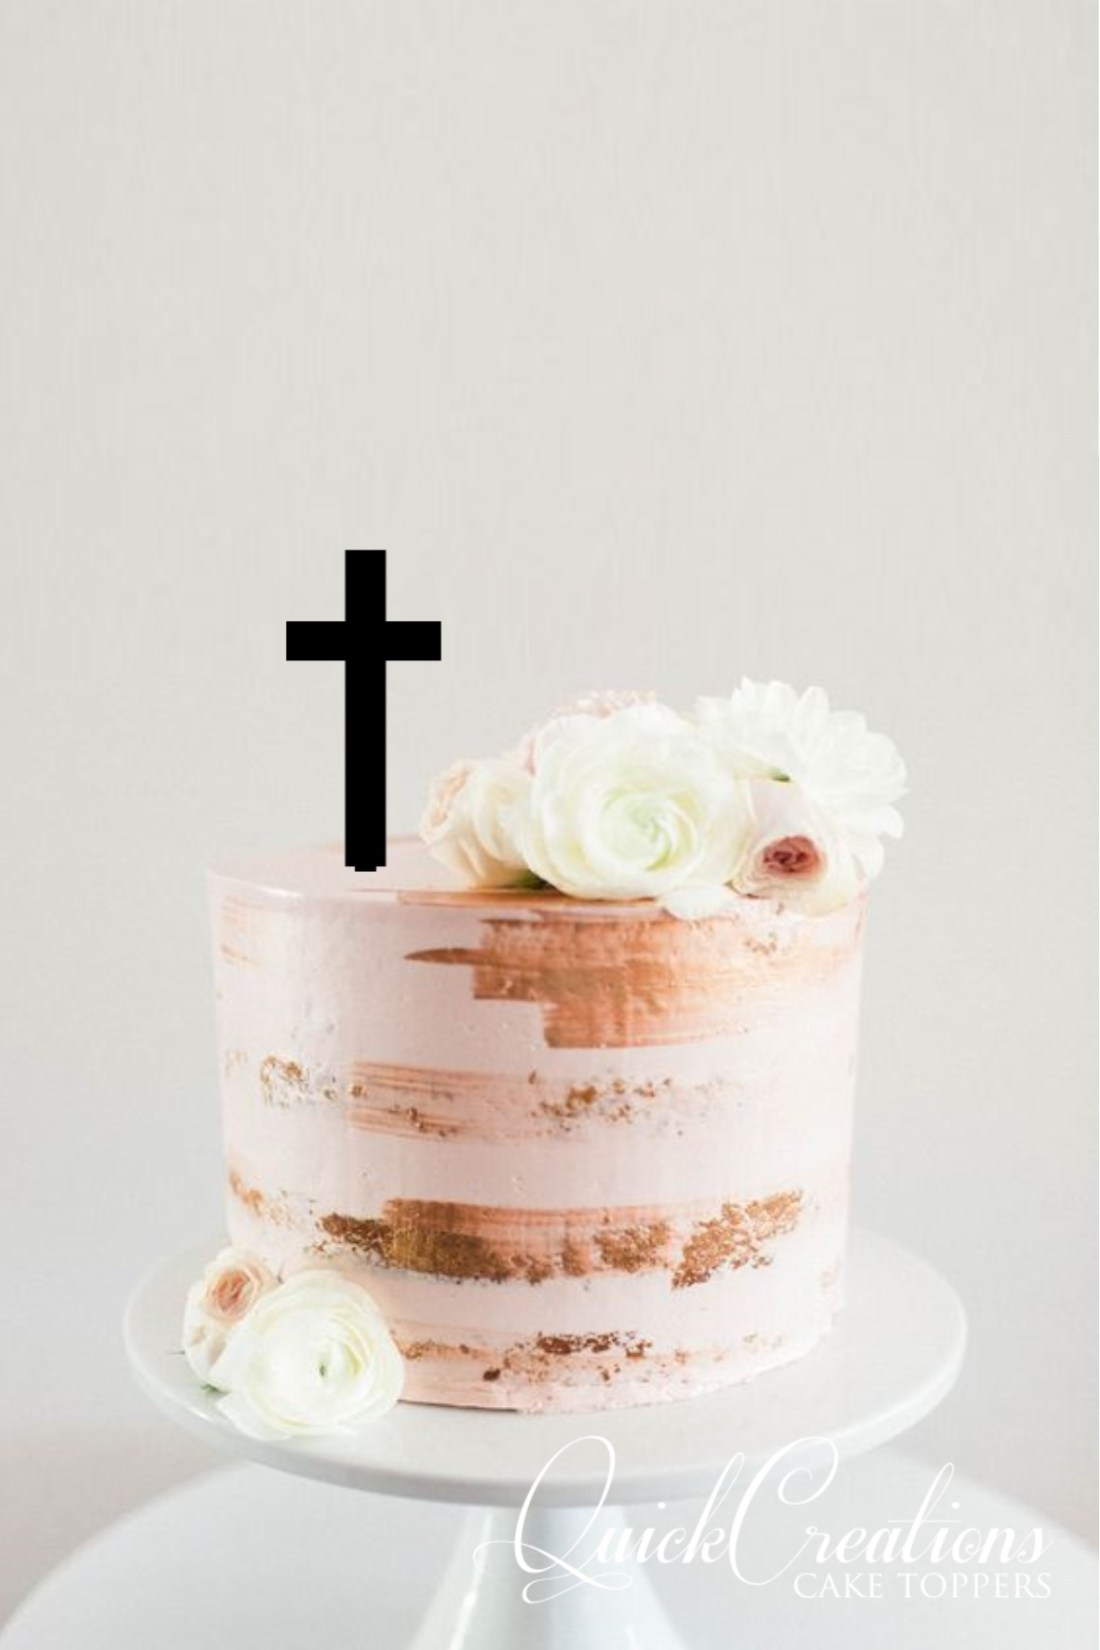 Quick Creations Cake Topper - Cross v2